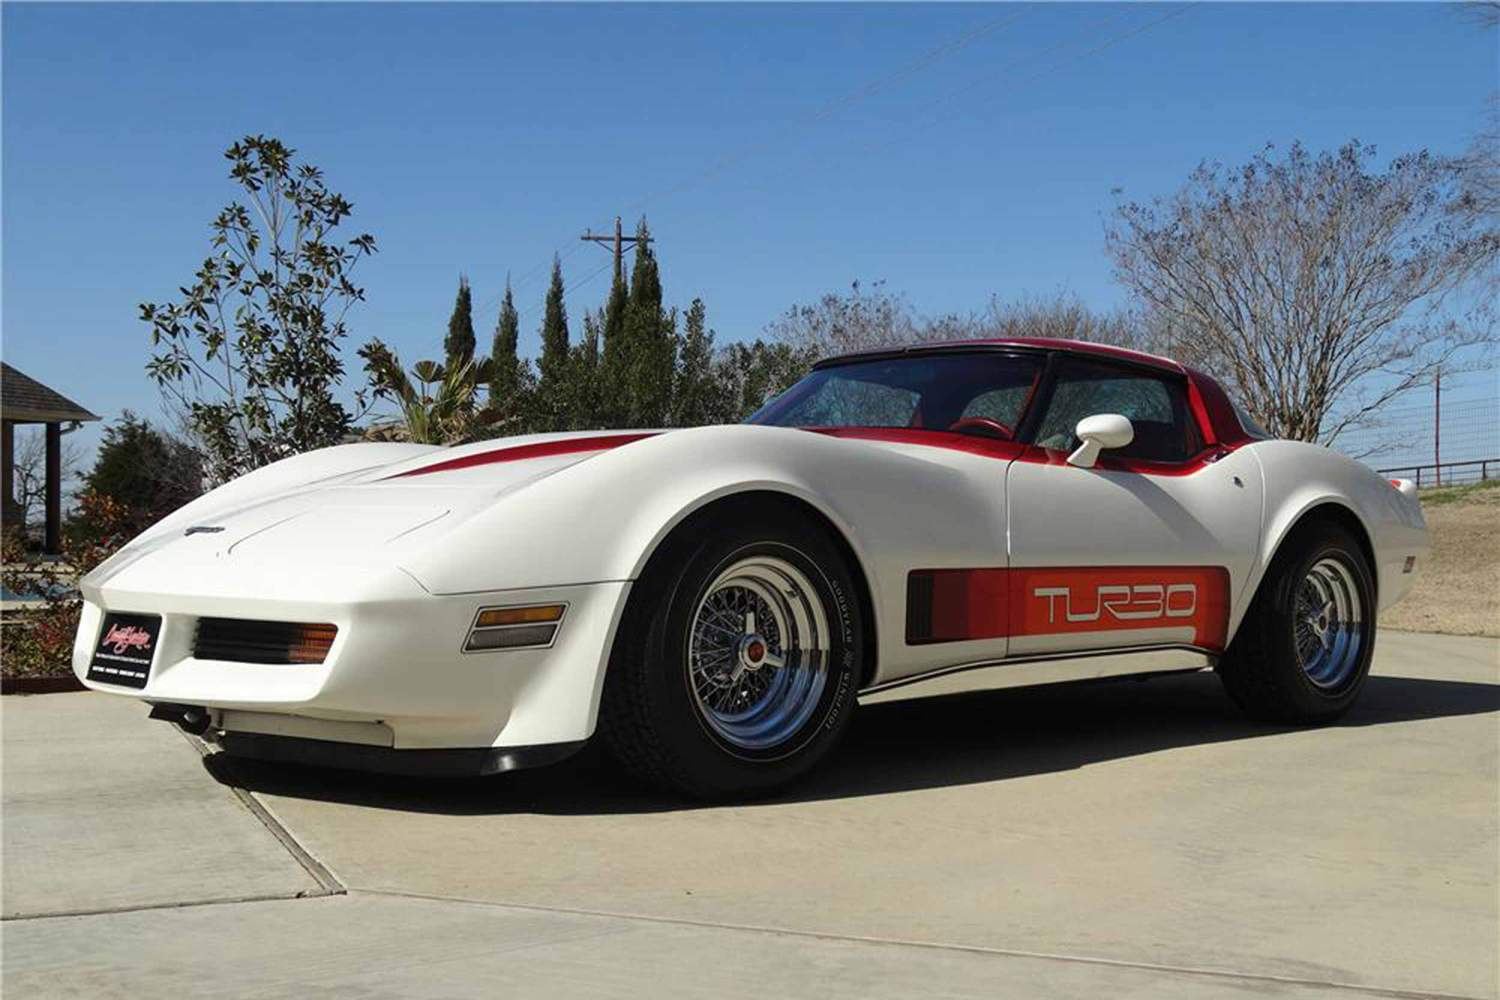 1980 Corvette Turbo